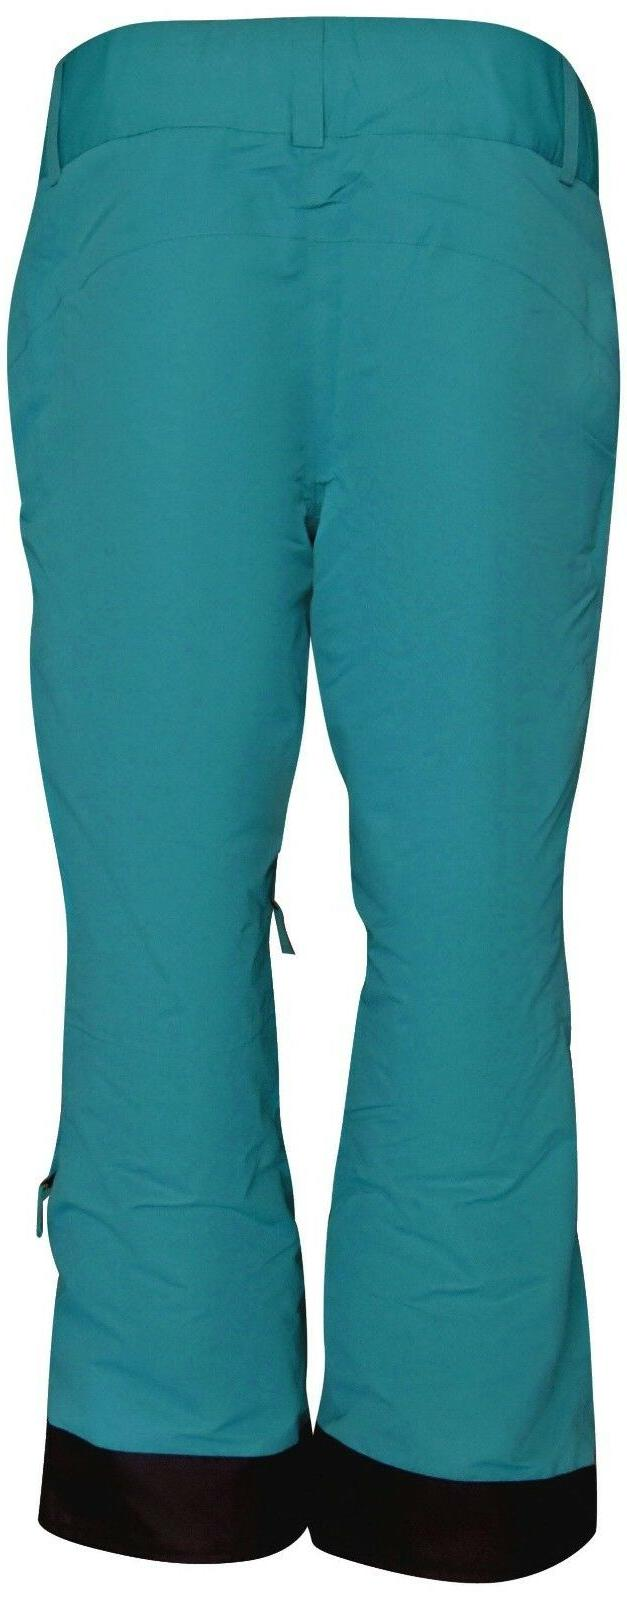 New Snow Country Womens Ski S Teal $125